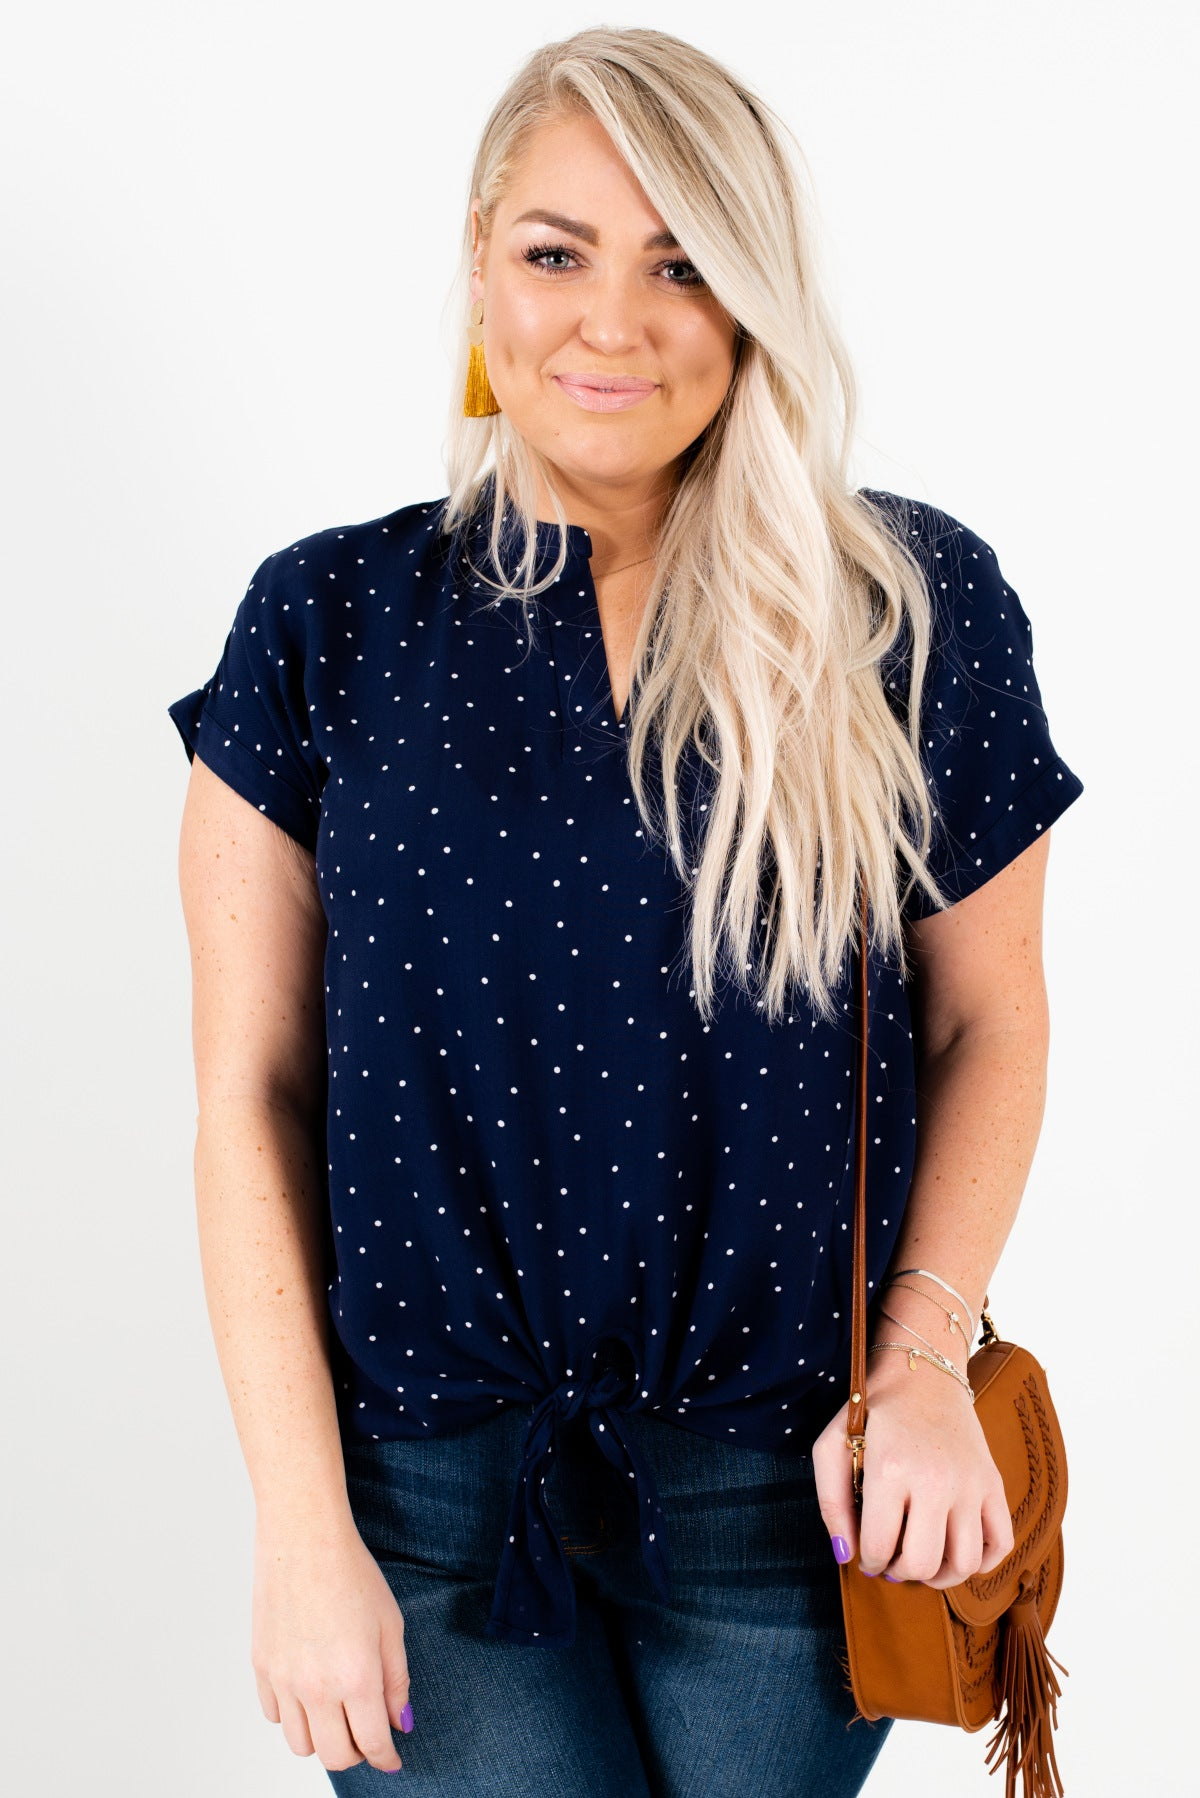 Navy Blue and White Polka Dot Patterned Plus Size Boutique Blouses for Women